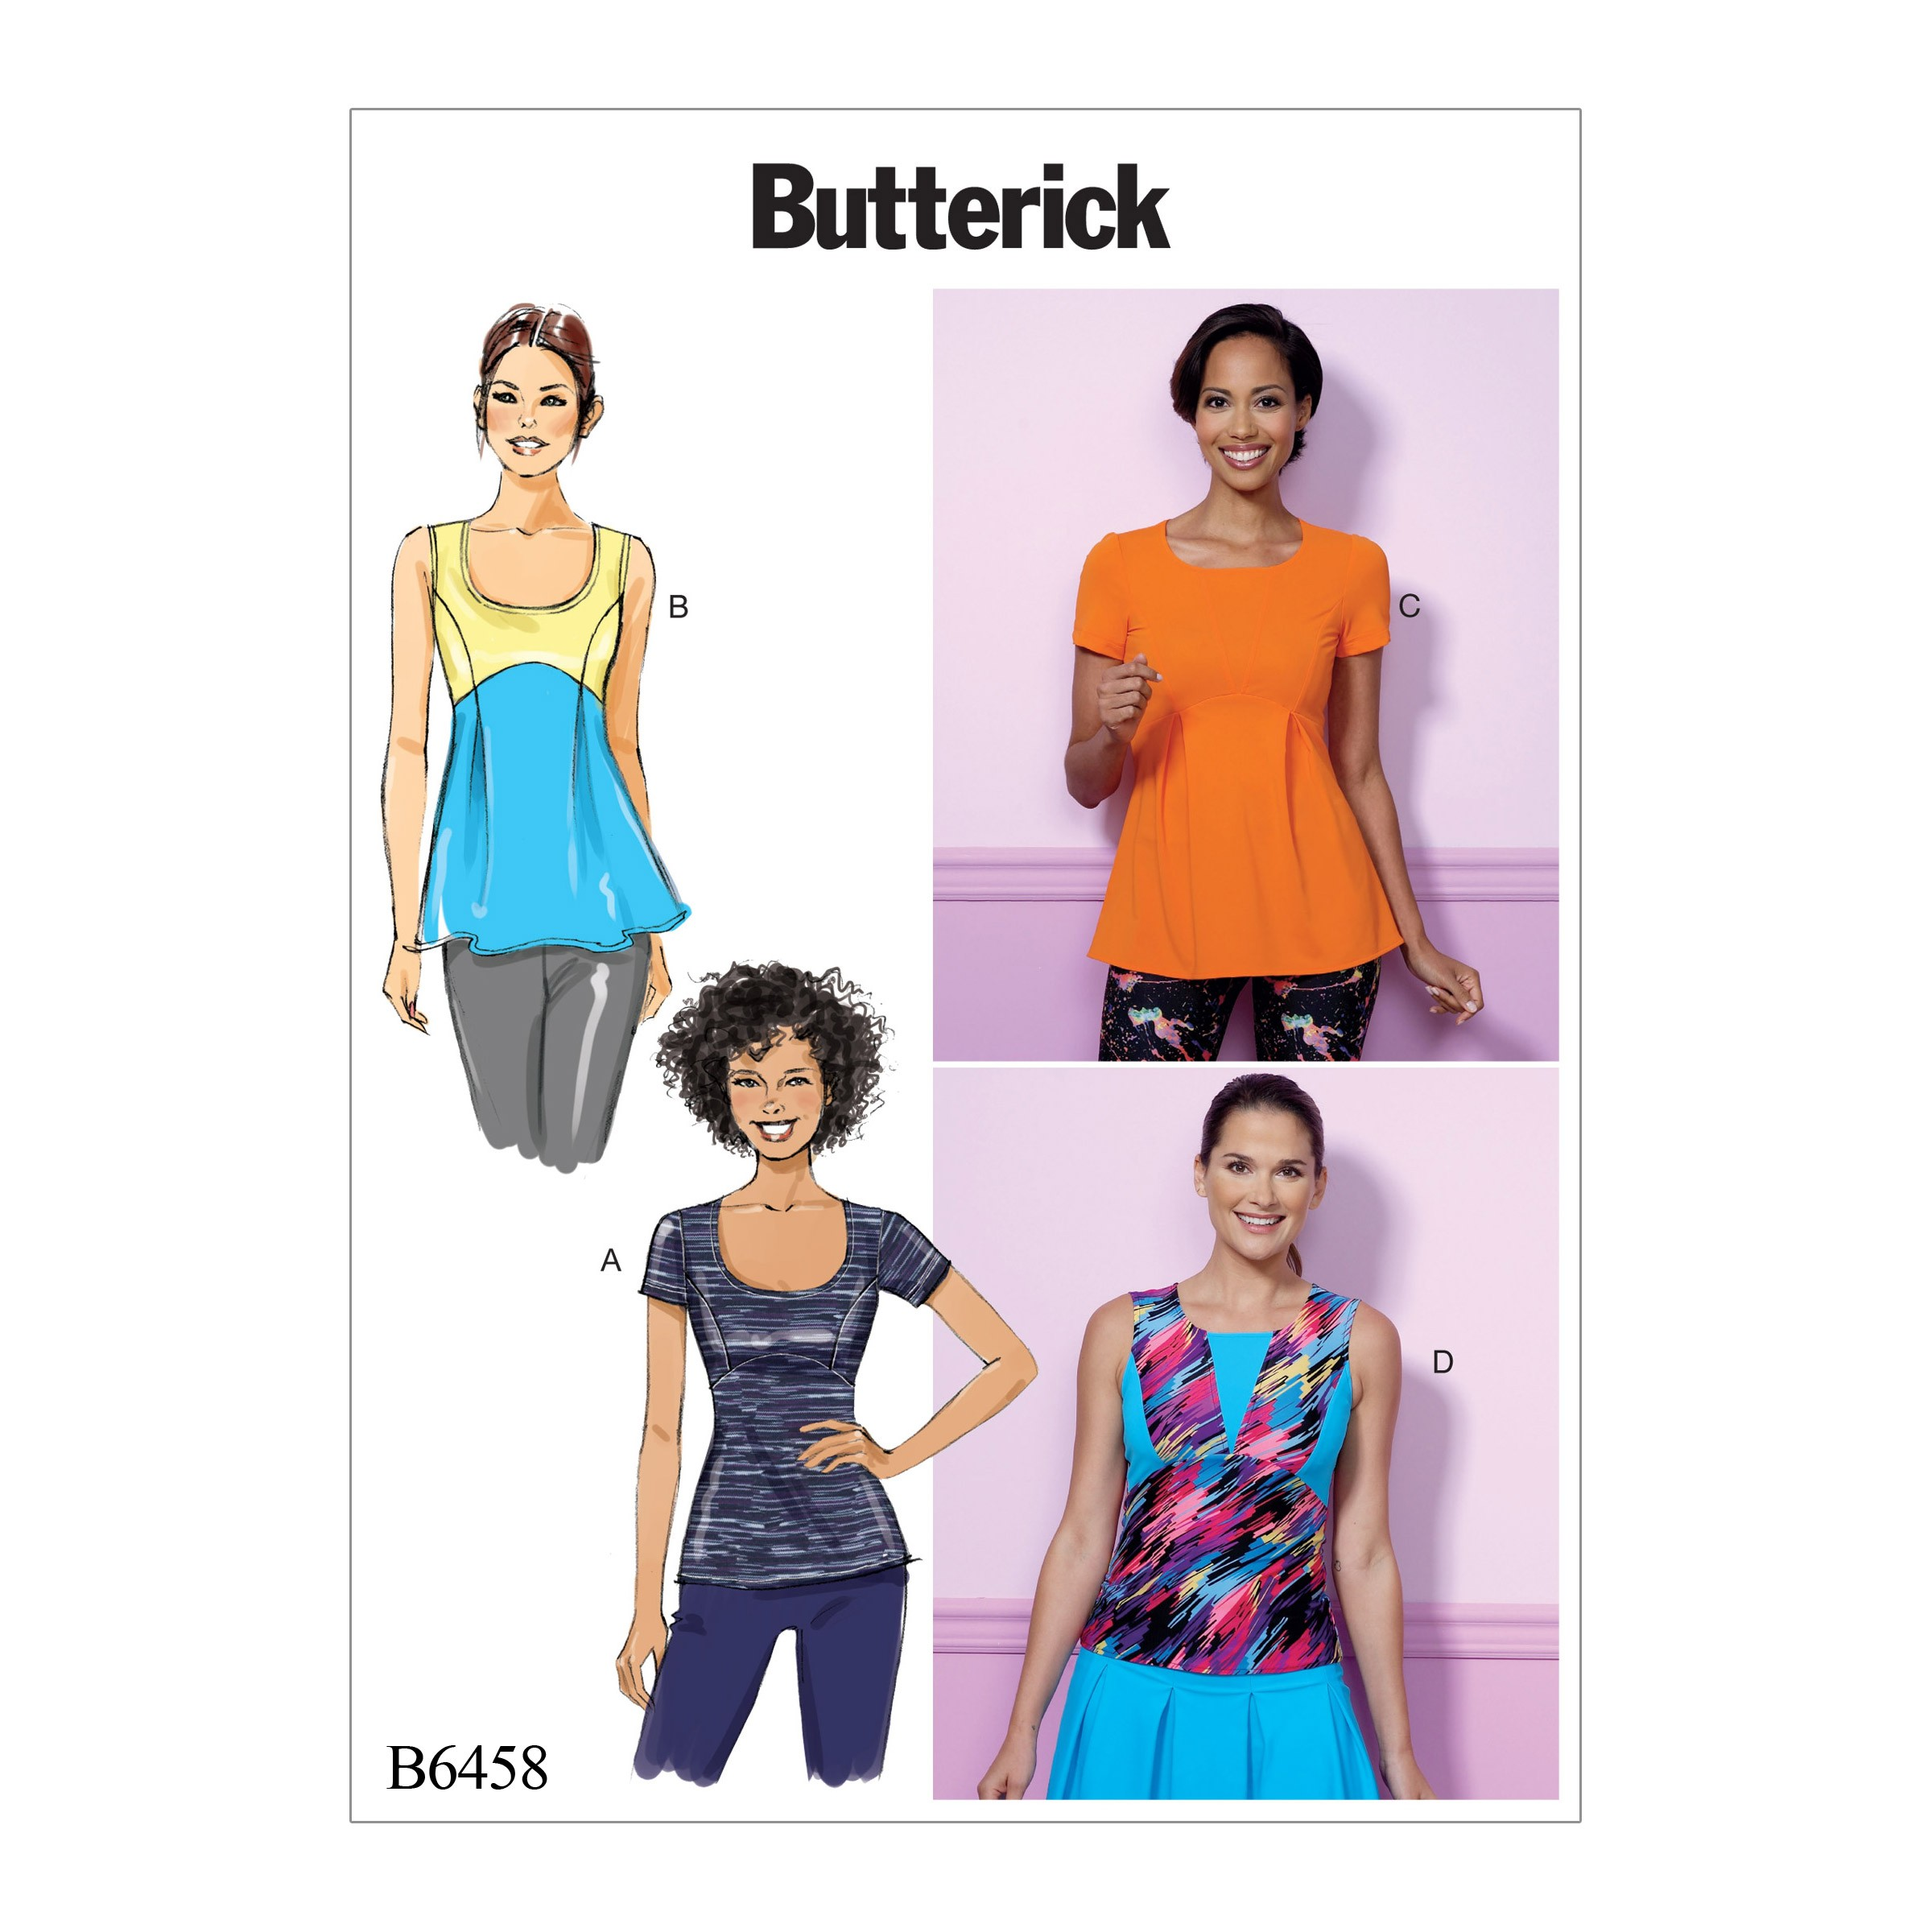 Butterick Sewing Pattern 6458 Misses' Pullover Panelled Tops